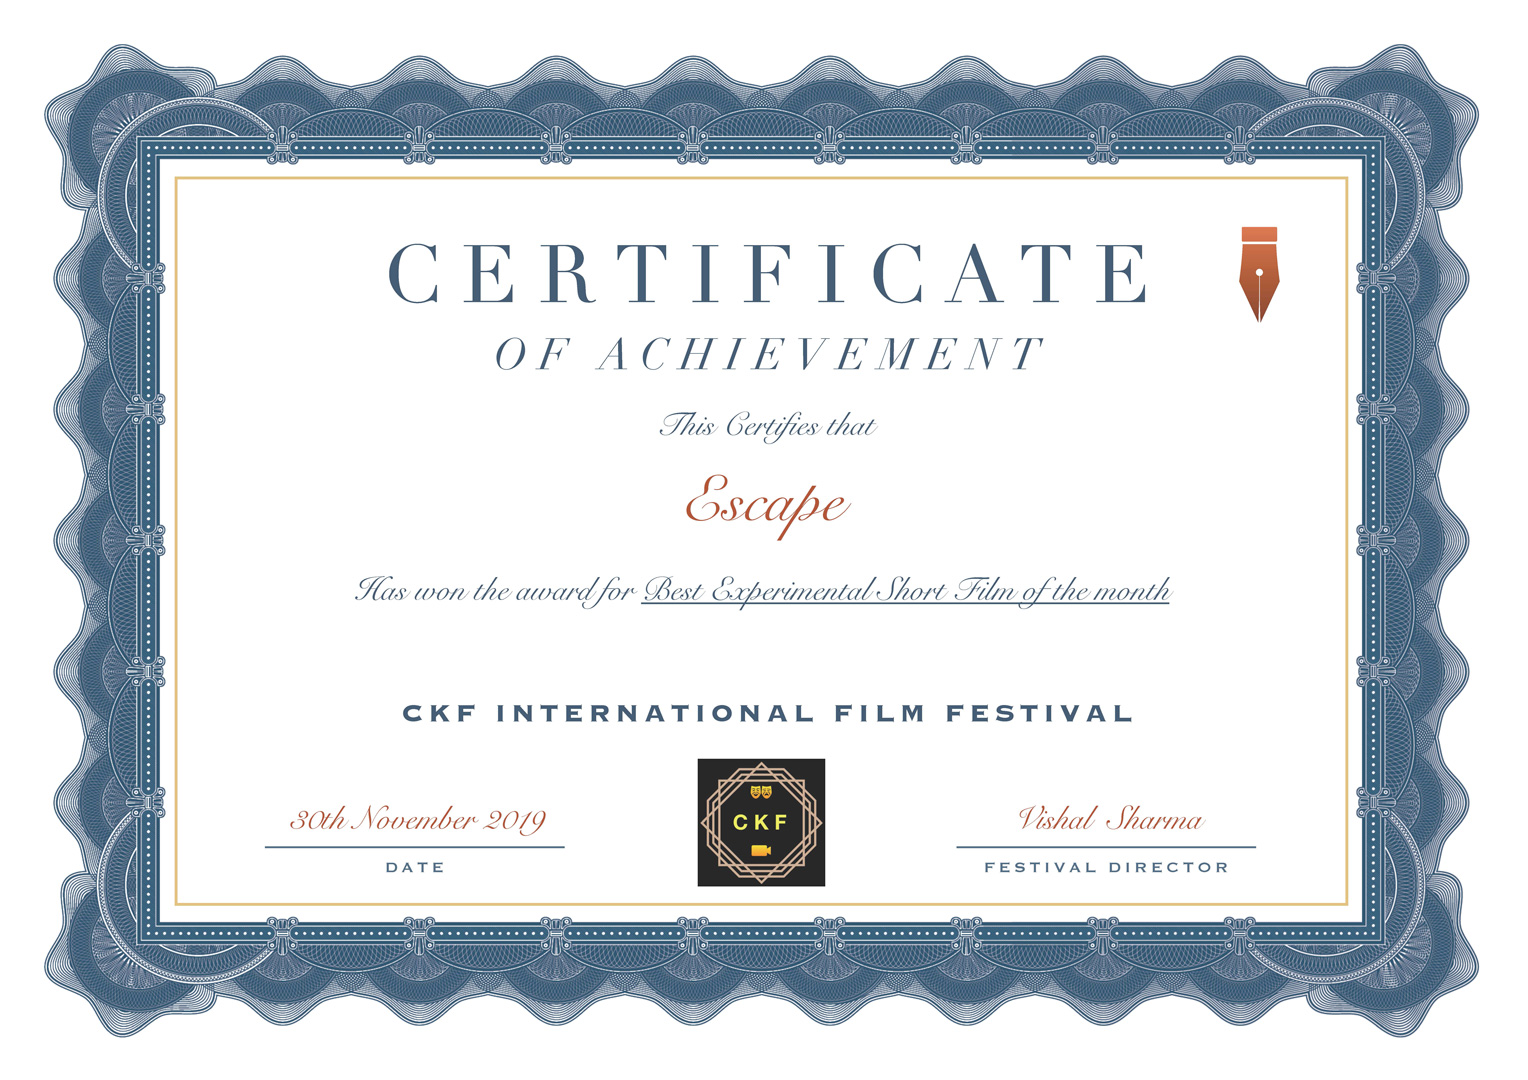 CKF INTERNATIONAL FILM FESTIVAL Best Experimental short film of the month - ESCAPE